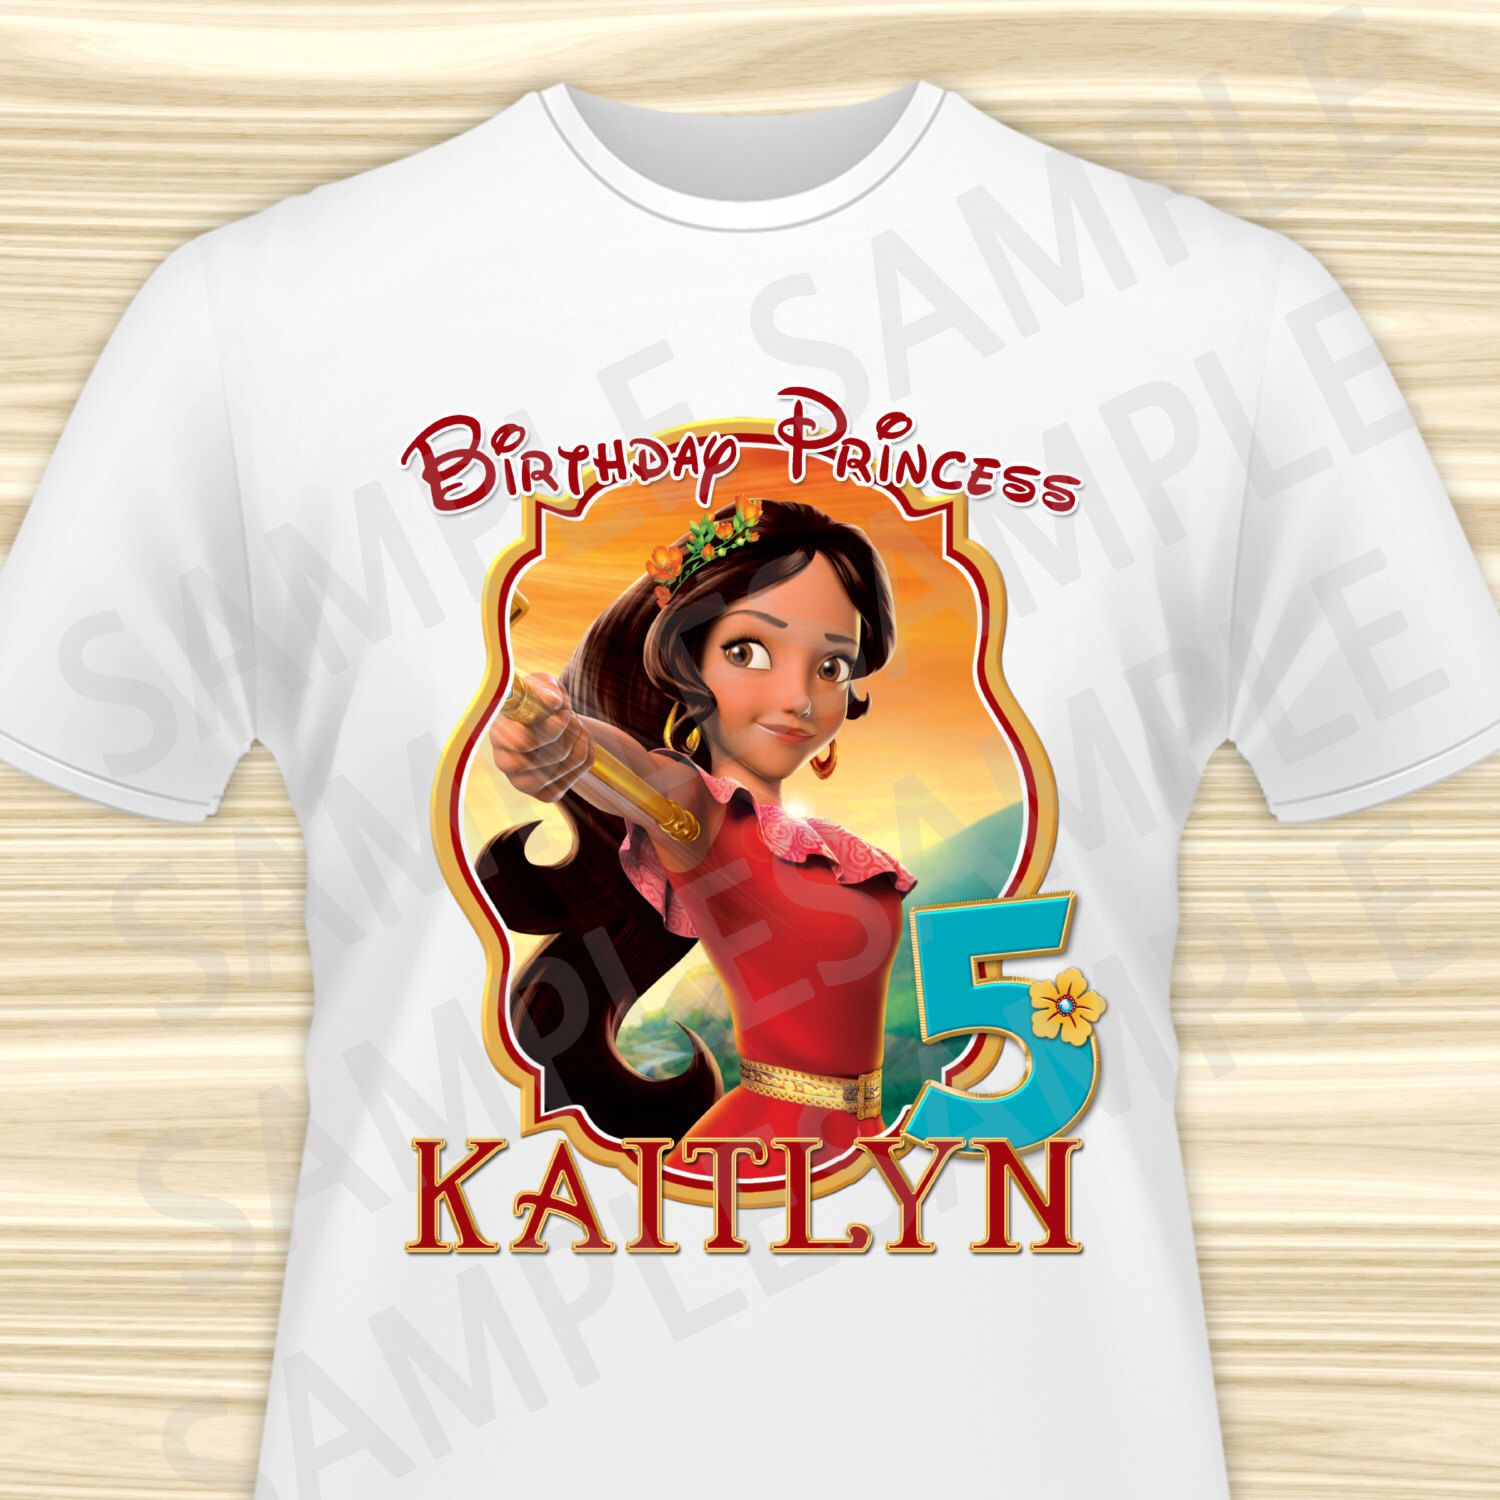 DISNEY *****PRINCESS ******ELENA OF AVALOR ********* T-SHIRT IRON ON TRANSFER